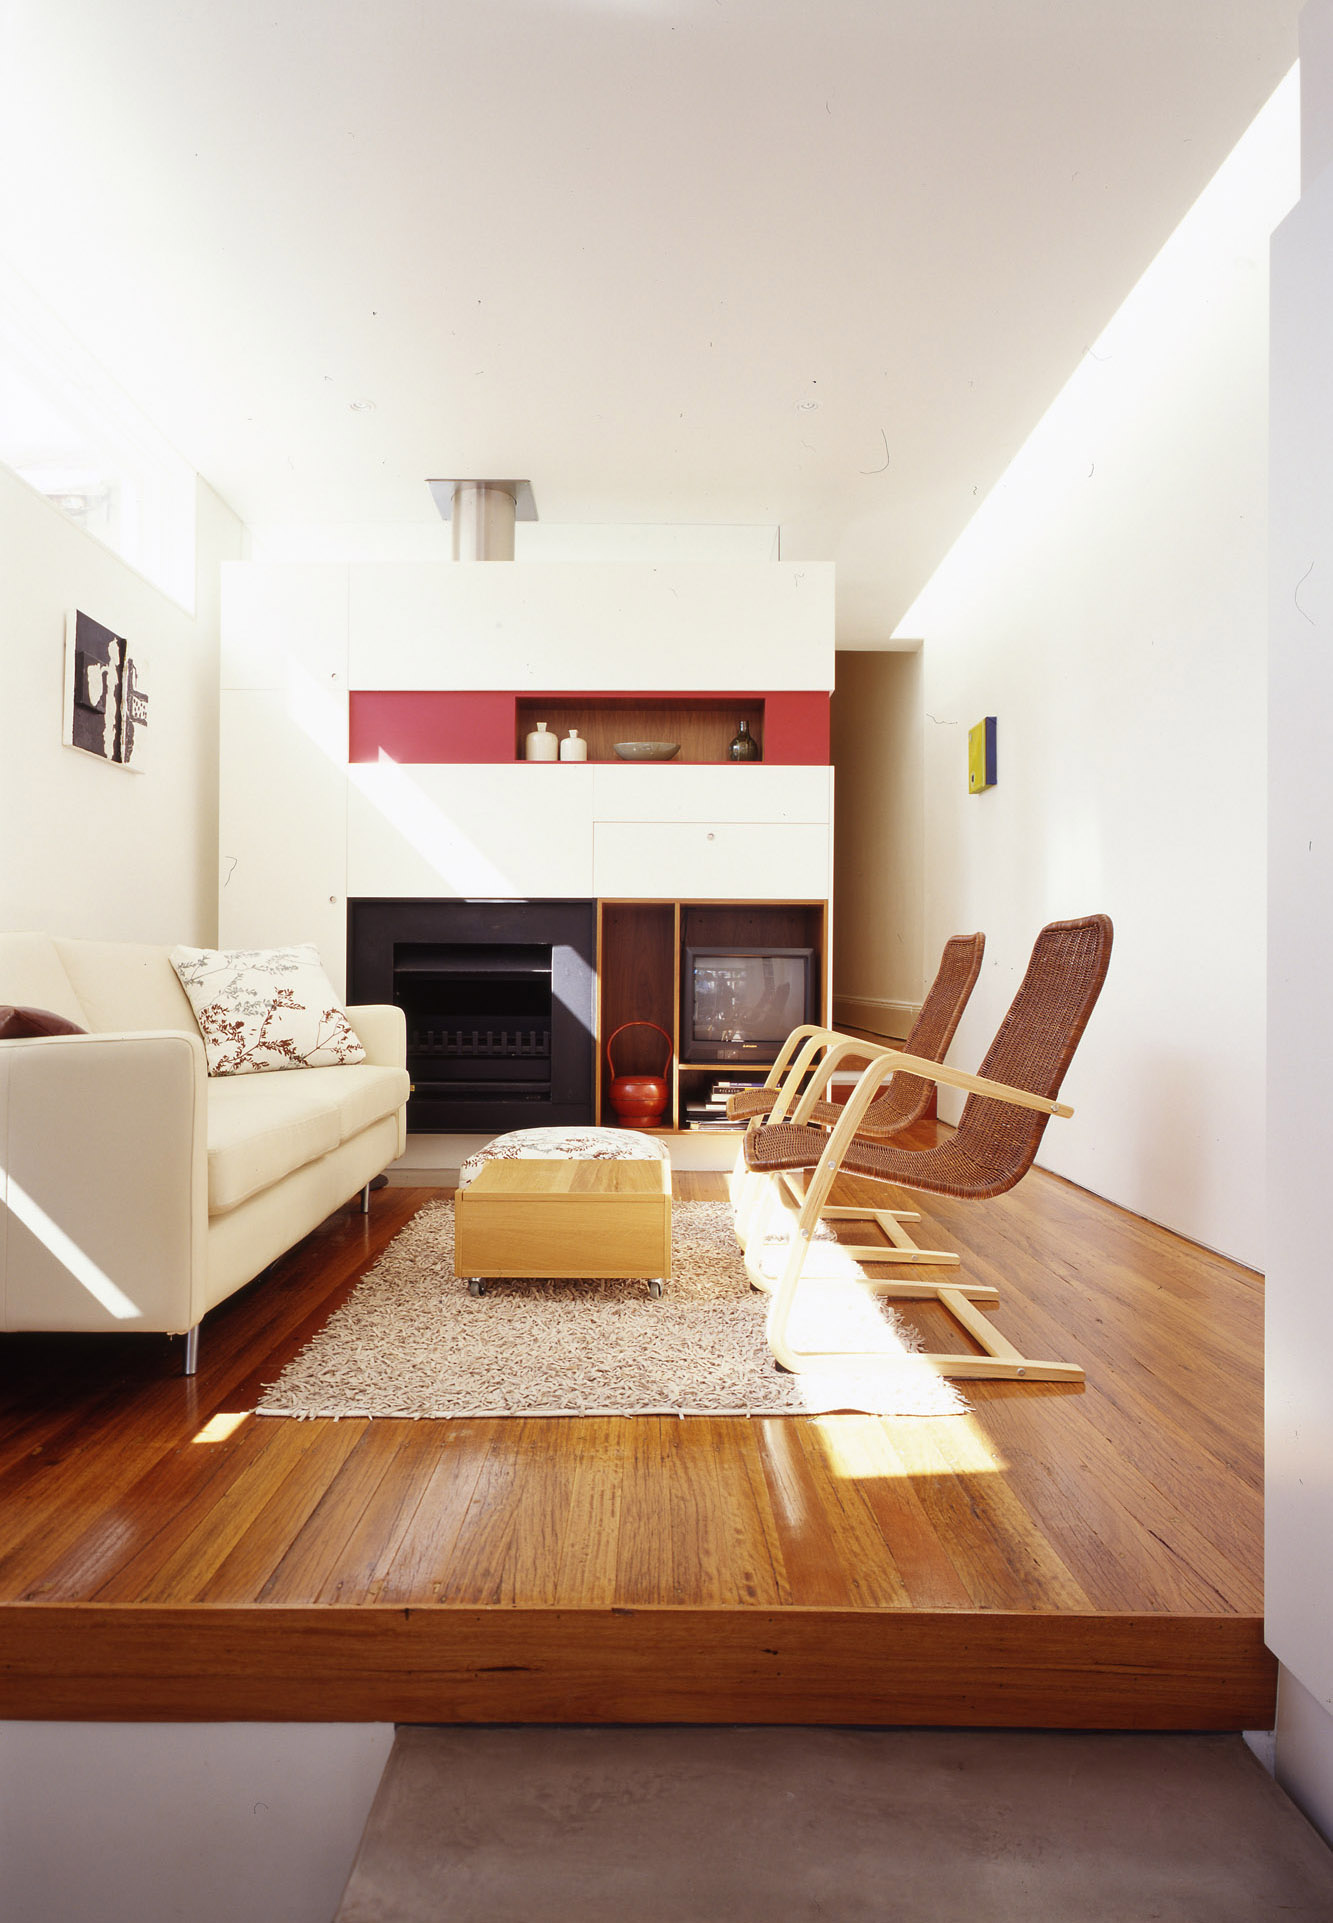 Wake Murphy House by Sydney award winning residential architecture office Sam Crawford Architects. Raised living room timber floor.